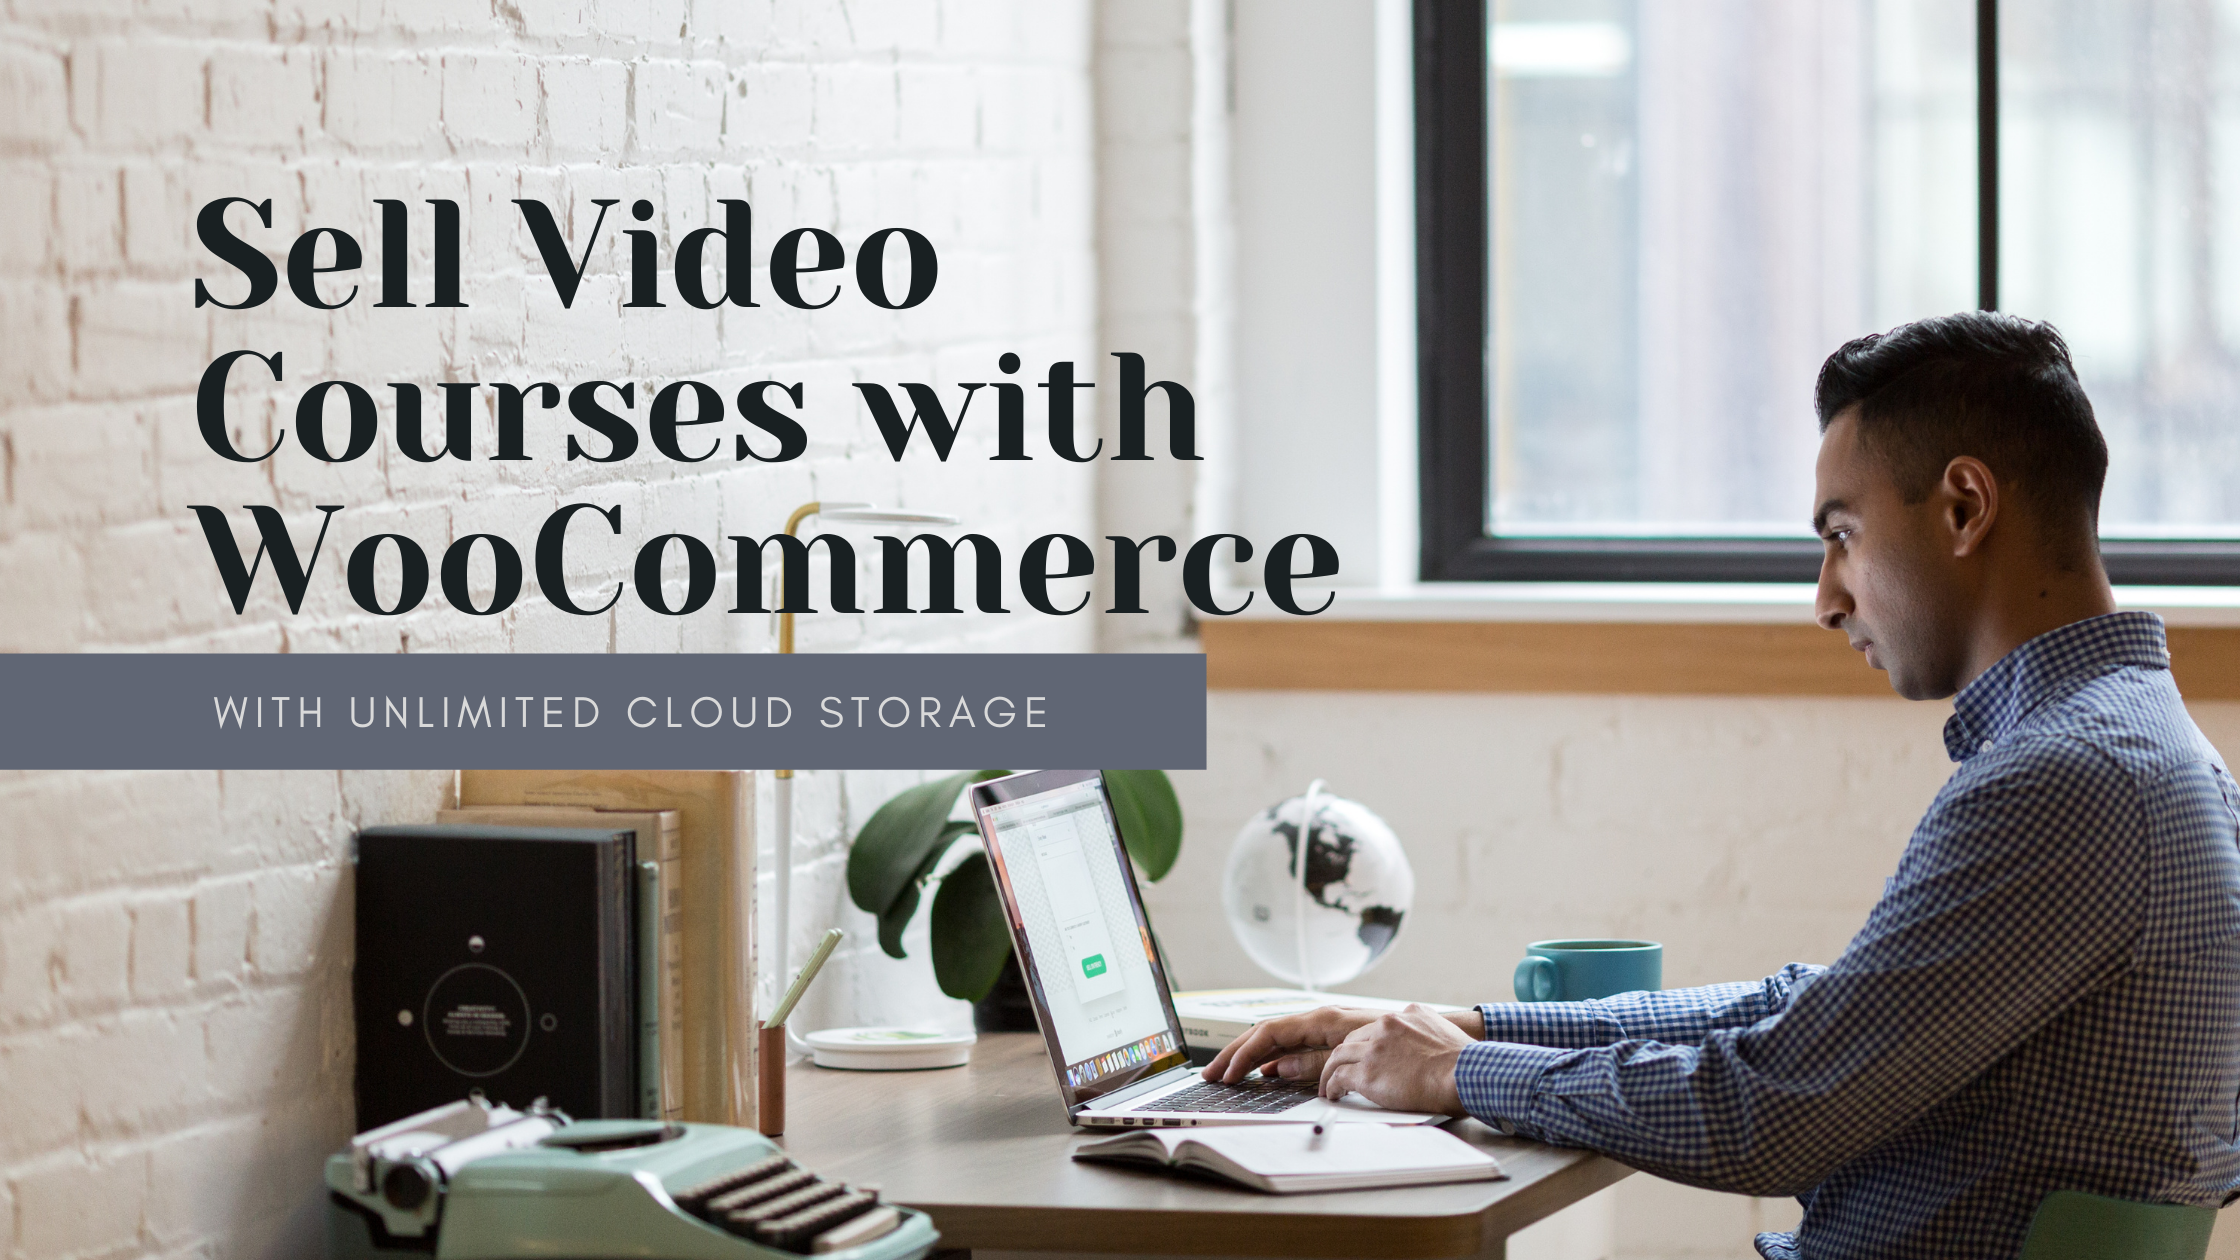 Sell Video Courses with WooCommerce